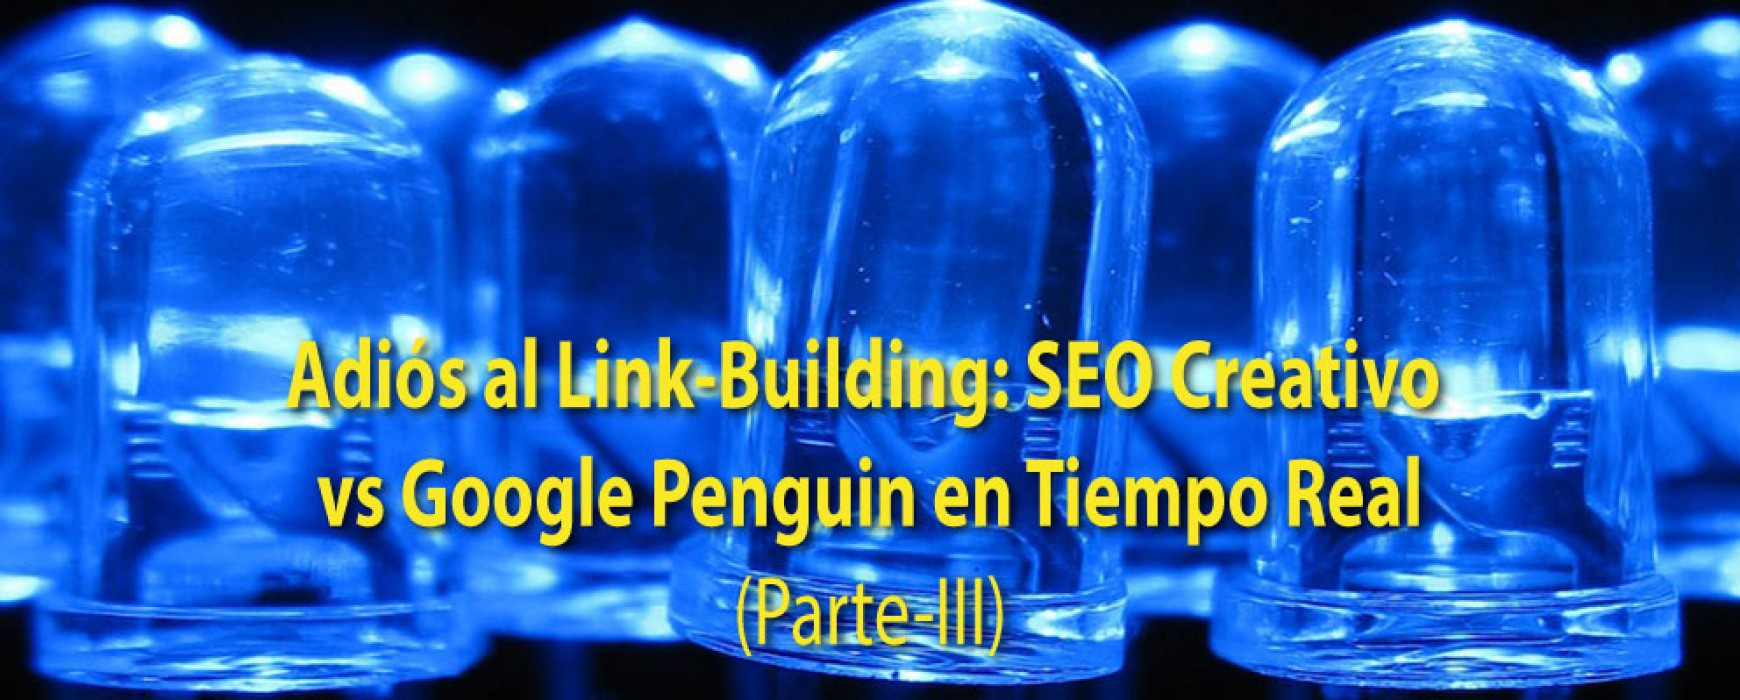 SEO Creativo vs Google Penguin (Parte-III)